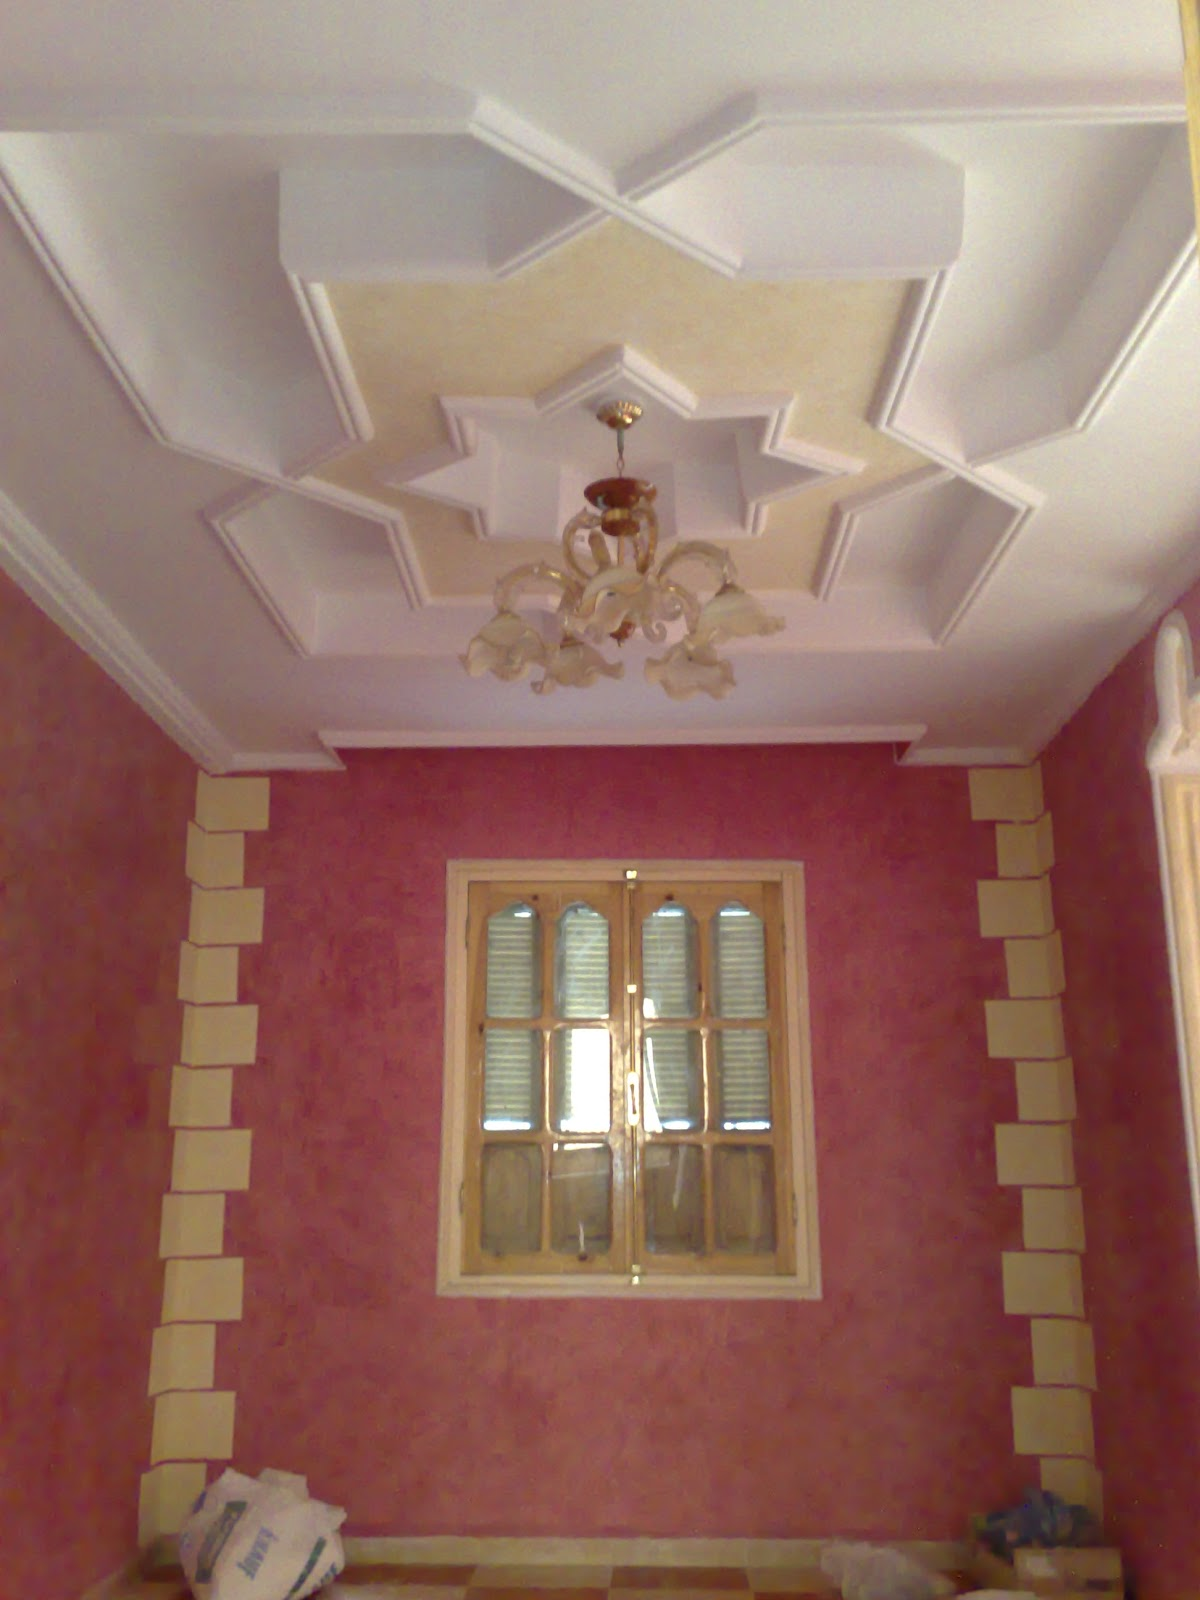 Decoration plafond platre platre for Decoration de platre marocain